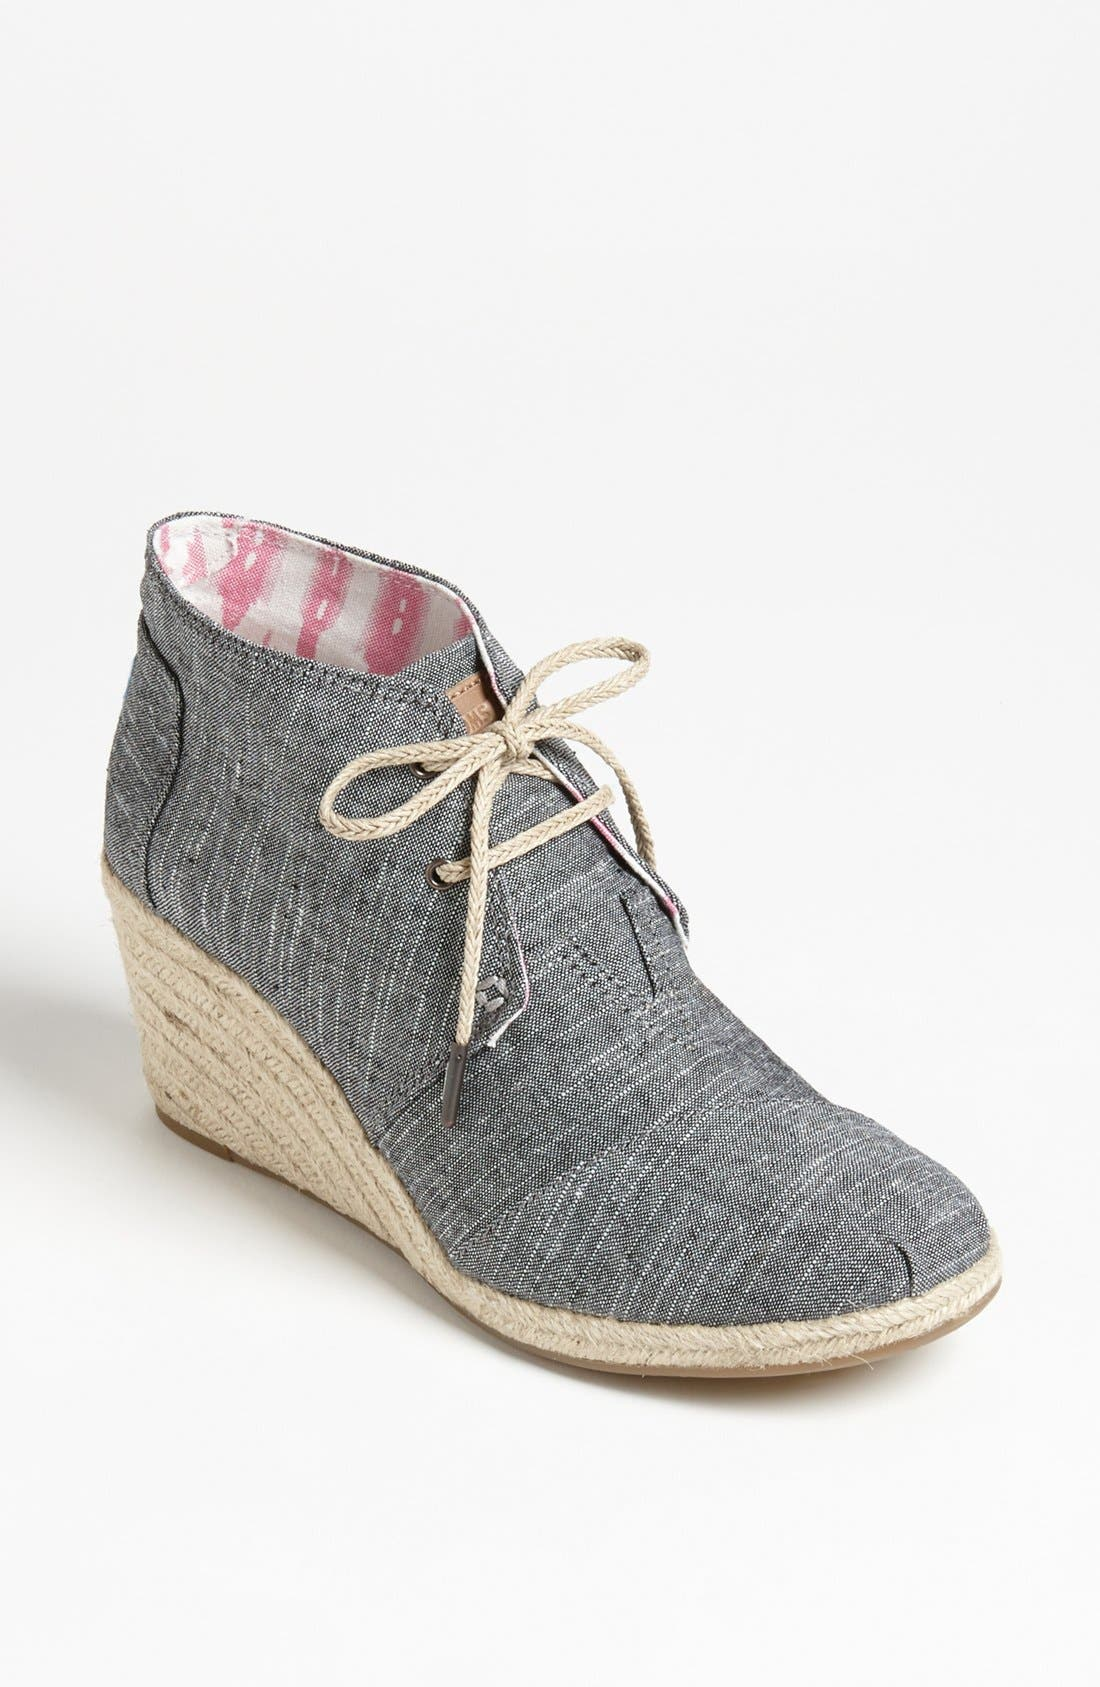 Alternate Image 1 Selected - TOMS 'Desert' Chambray Wedge Bootie